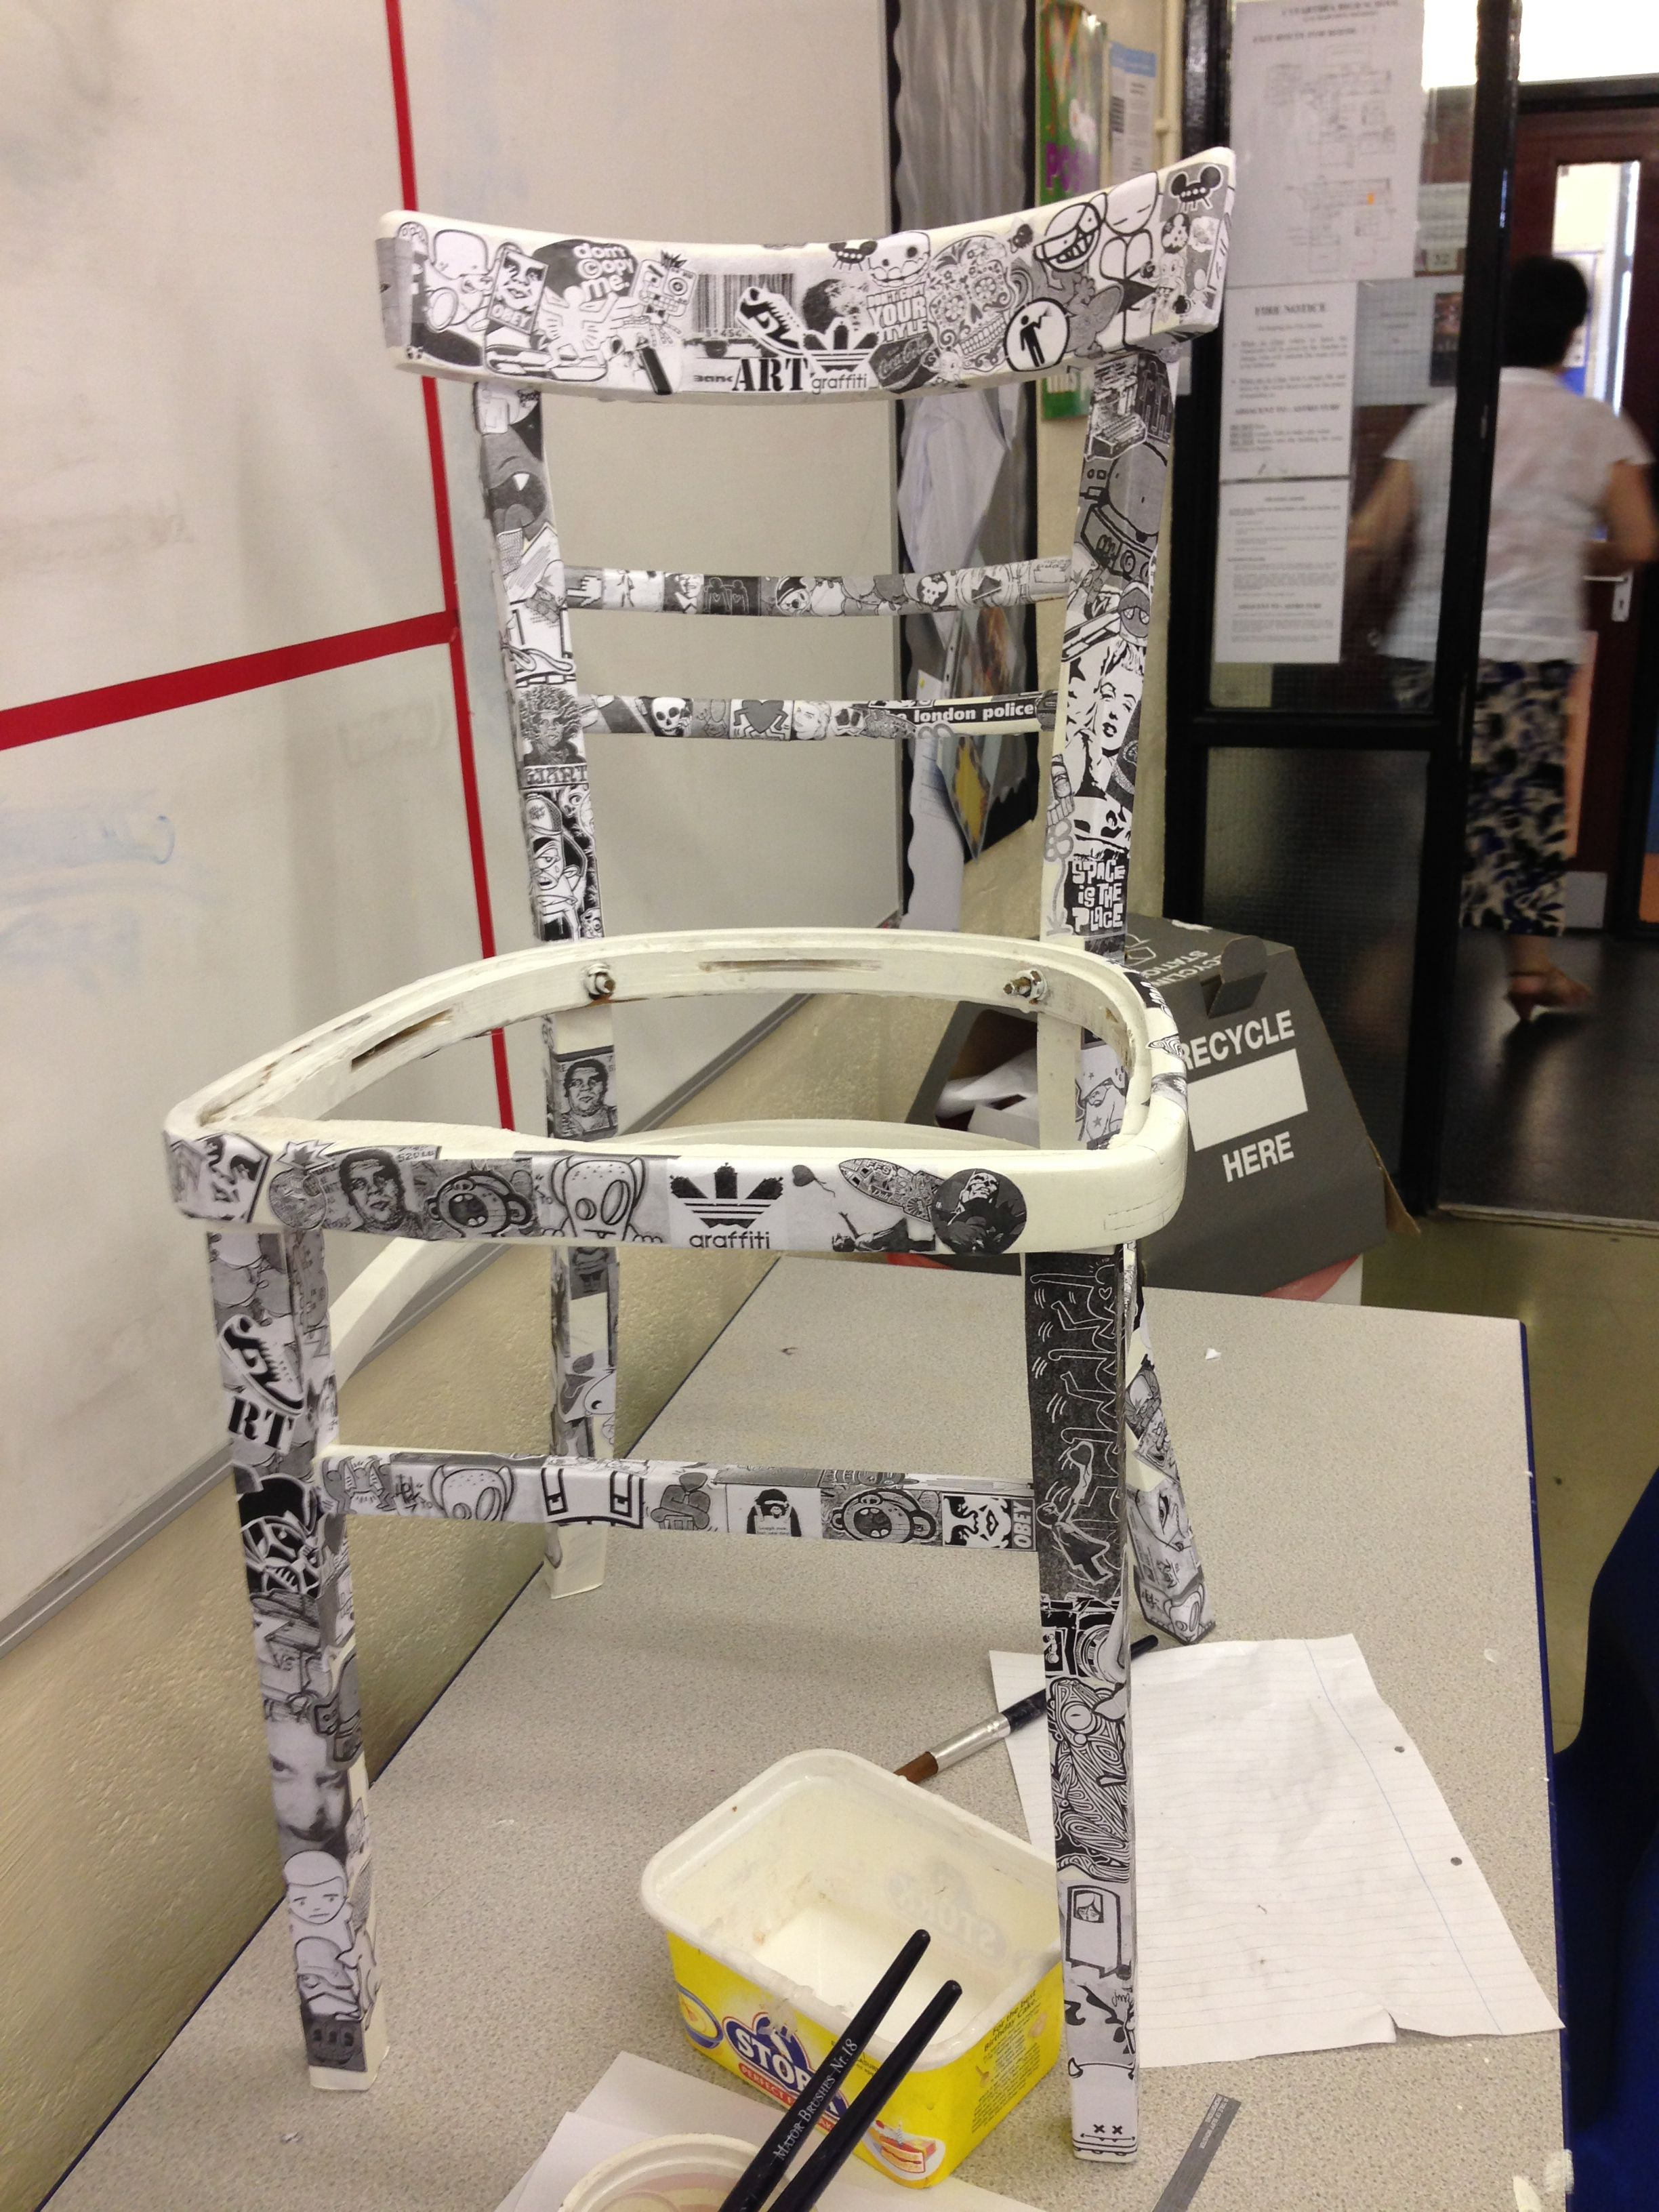 A work in progress black white sticker bomb chair - up-cycling at ...